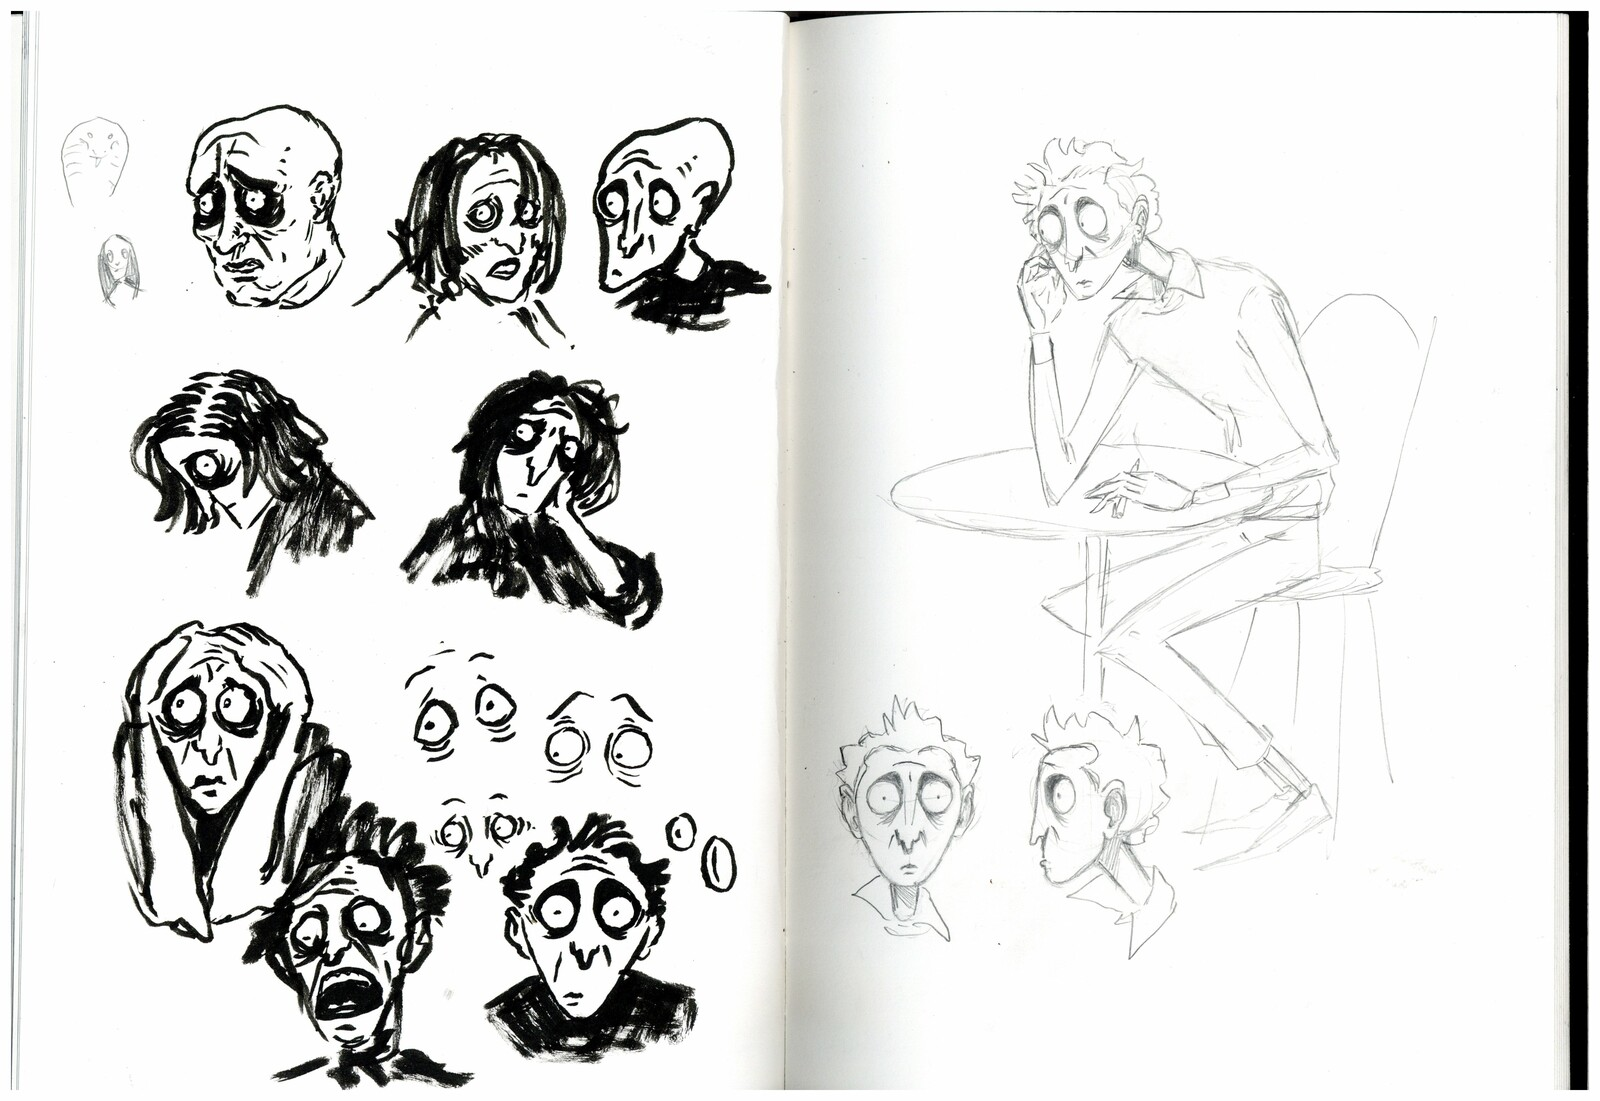 Early 'Snake man' concepts.